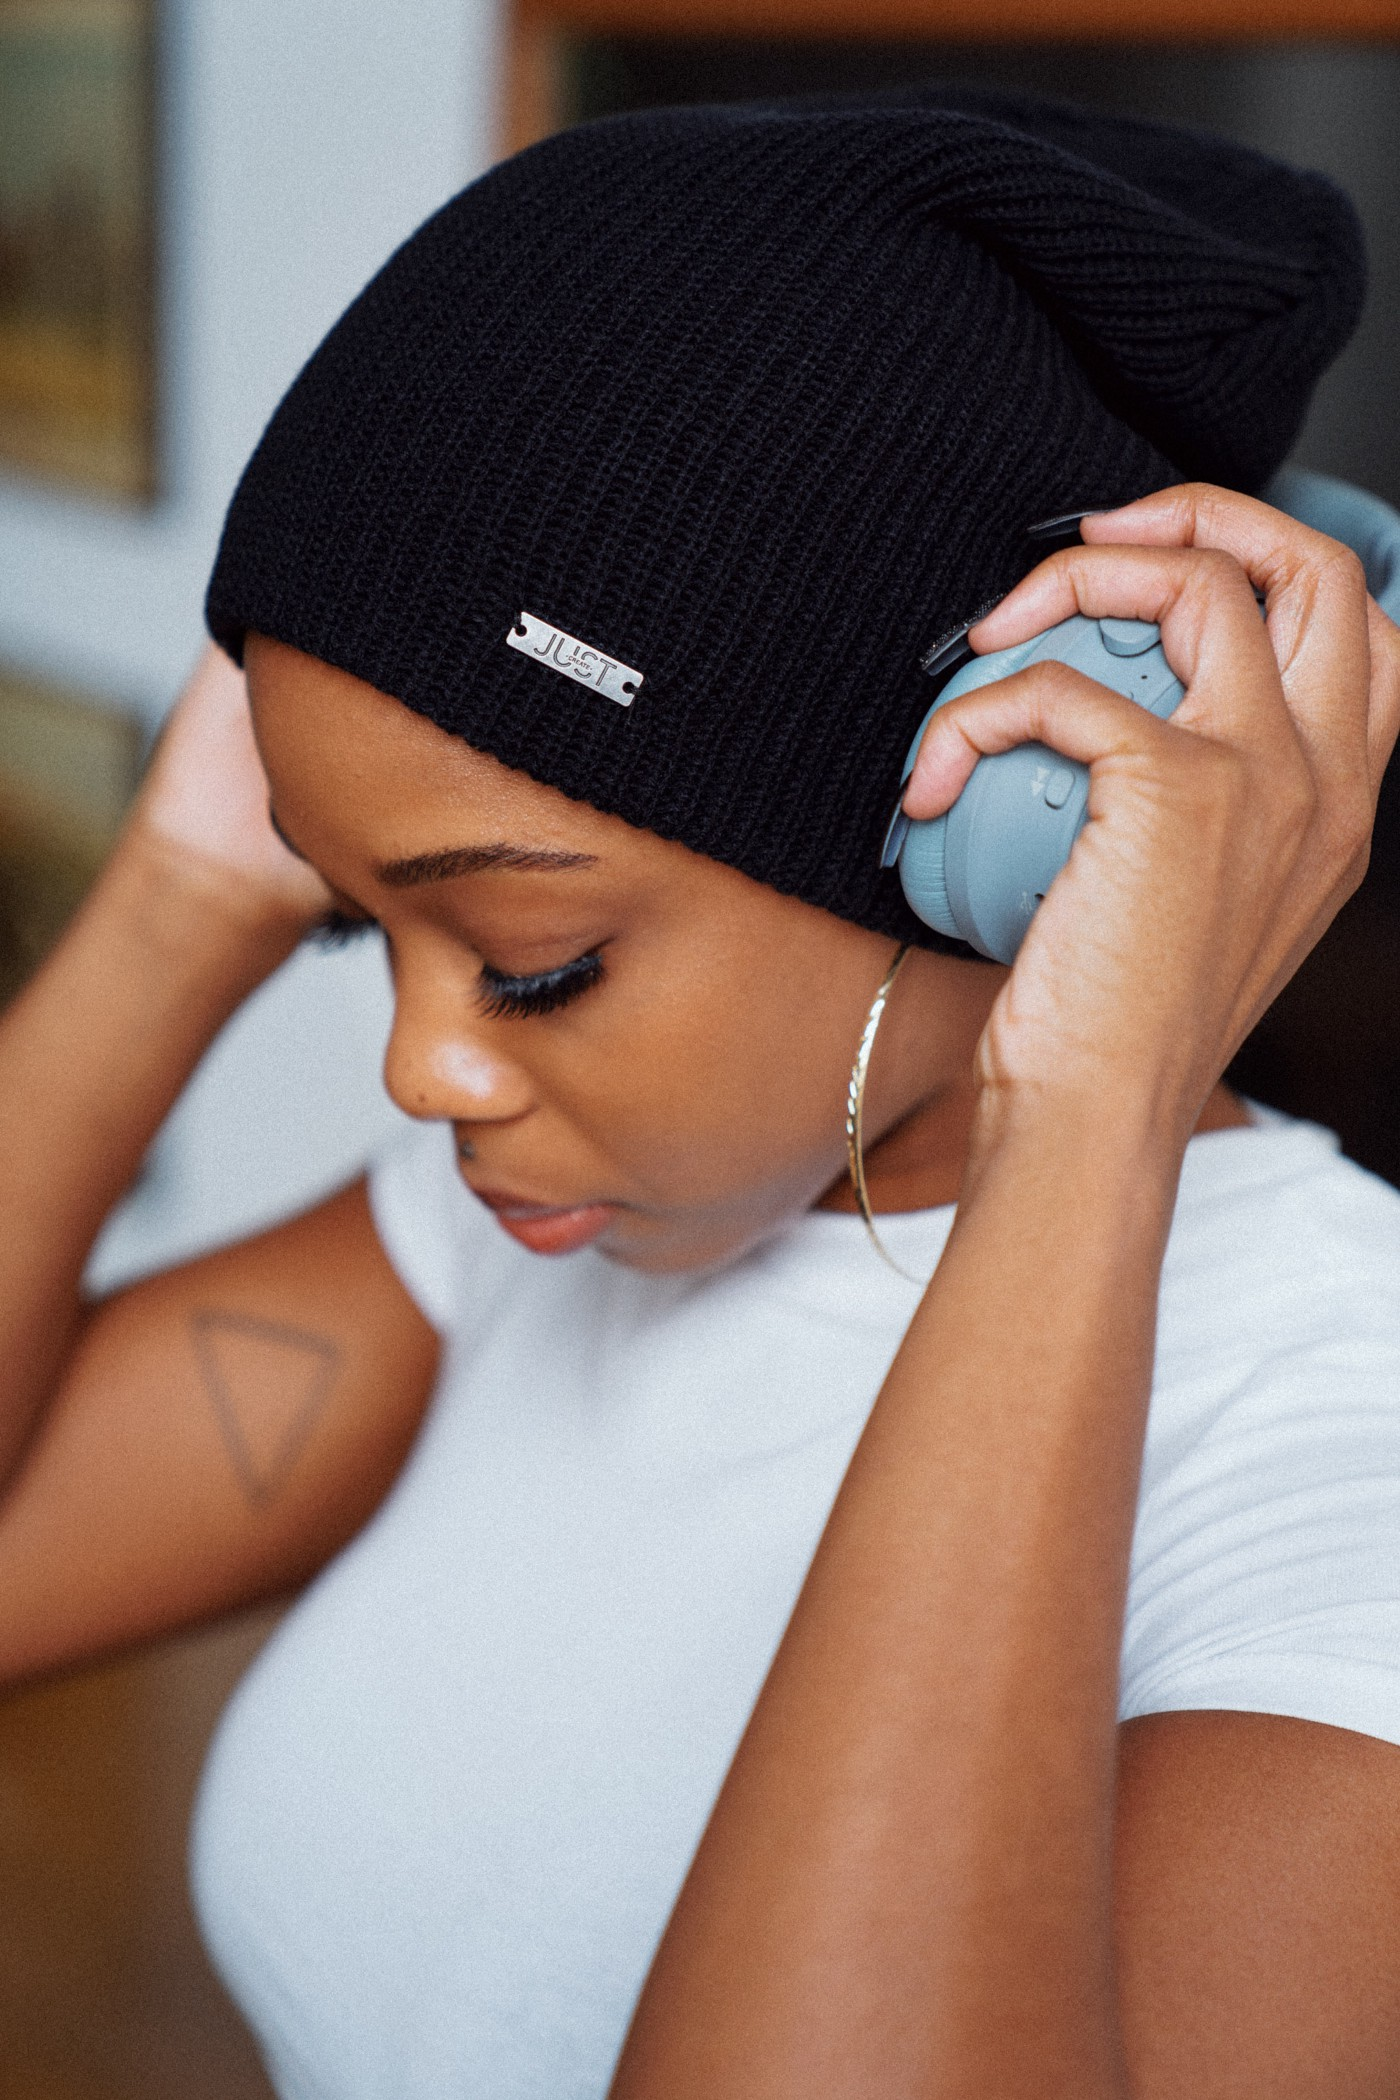 The image shows a pretty black girl covering her ears with a pair of headphones. She apparently is tuning out her surroundings and going within